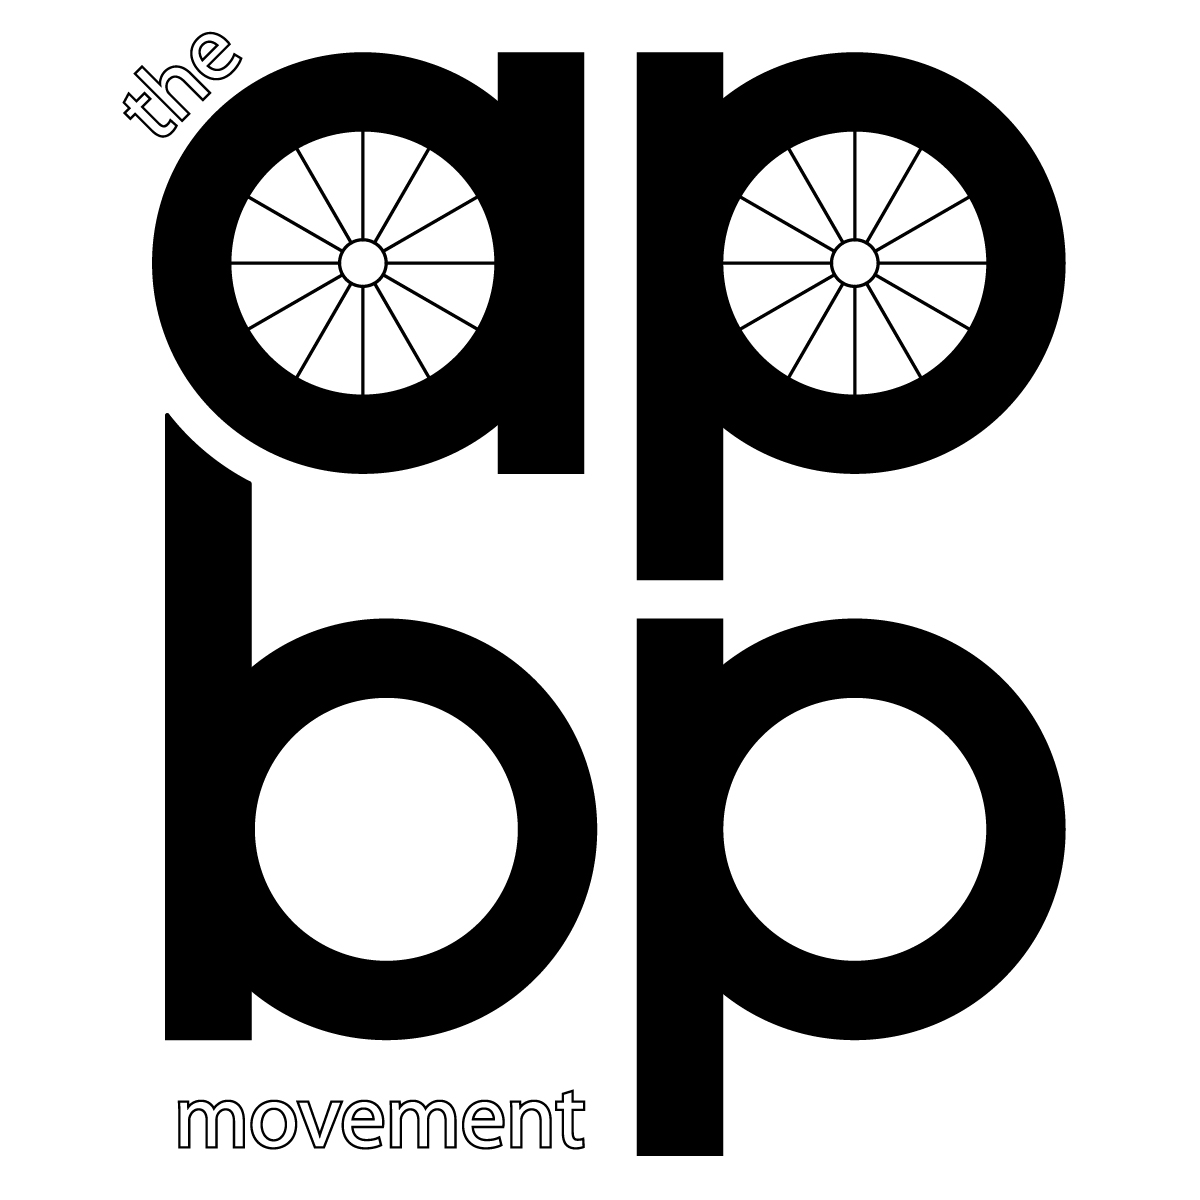 The APBP Movement